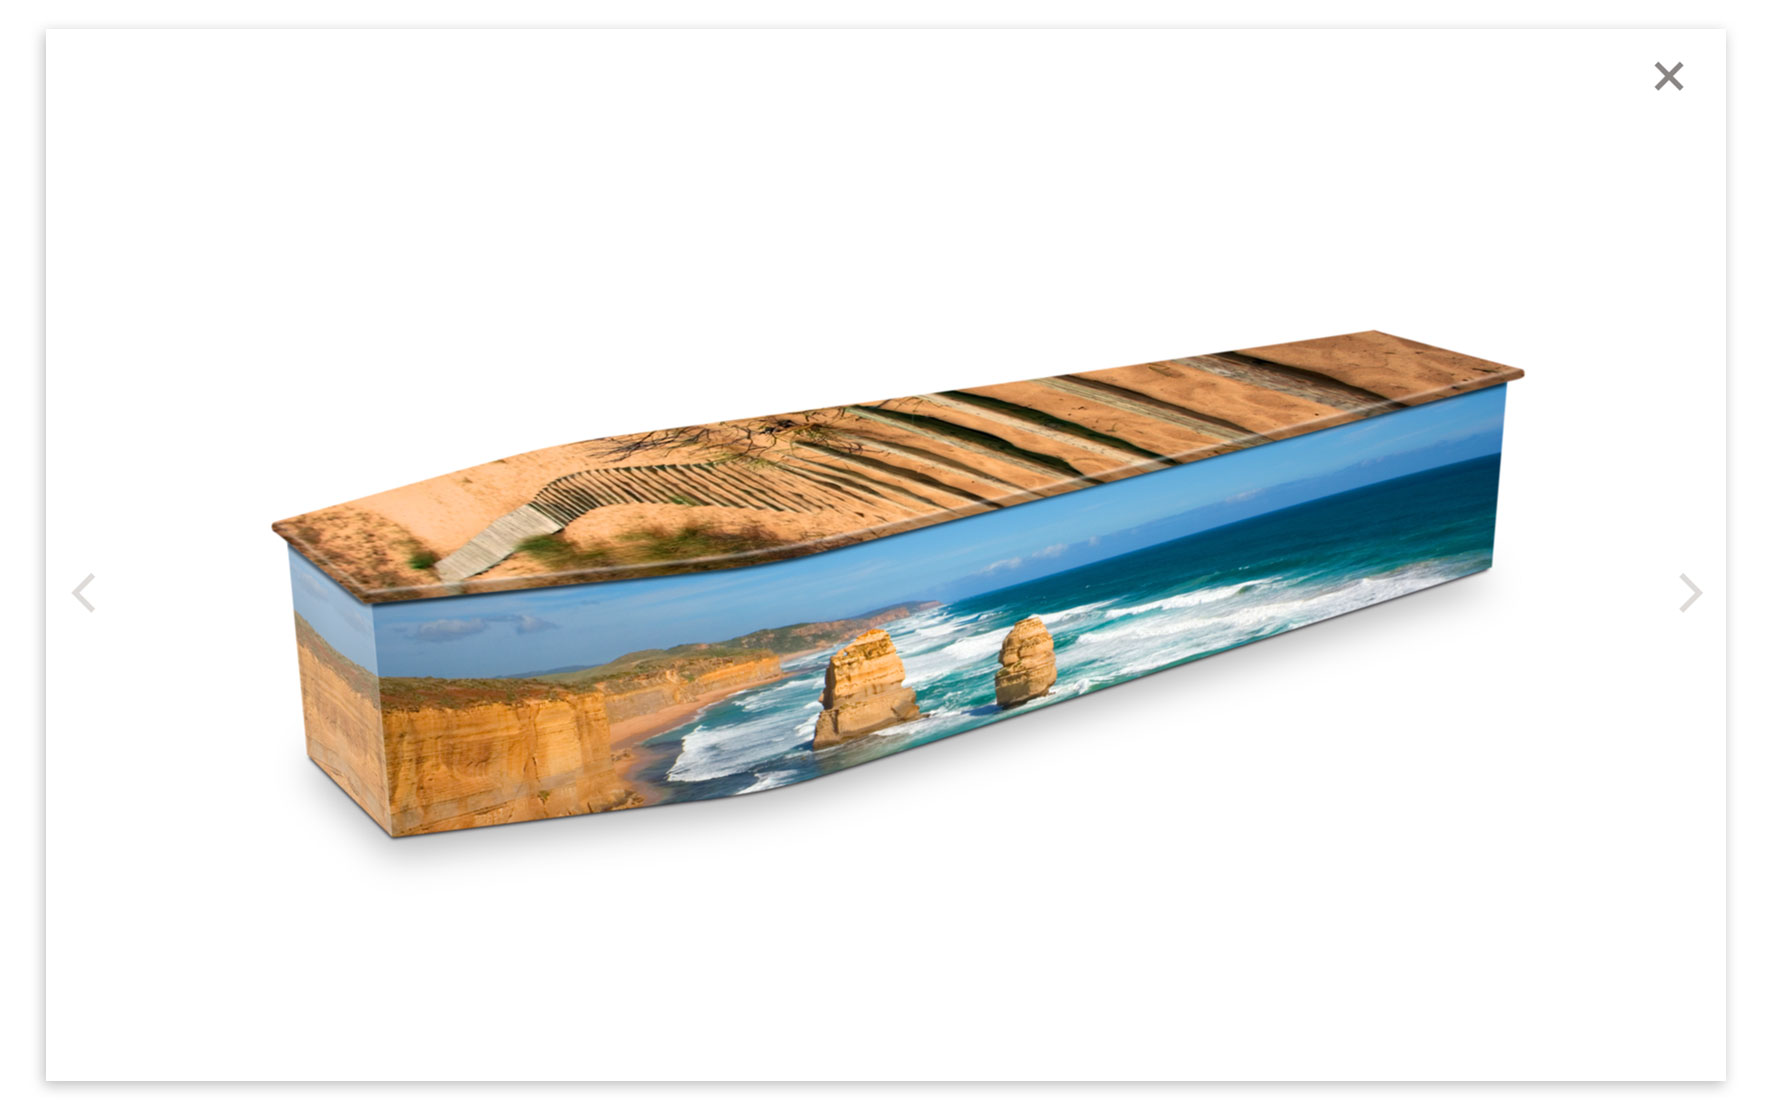 Coffin Designs Design Your Own Expression Coffin On Our New Website Ashton